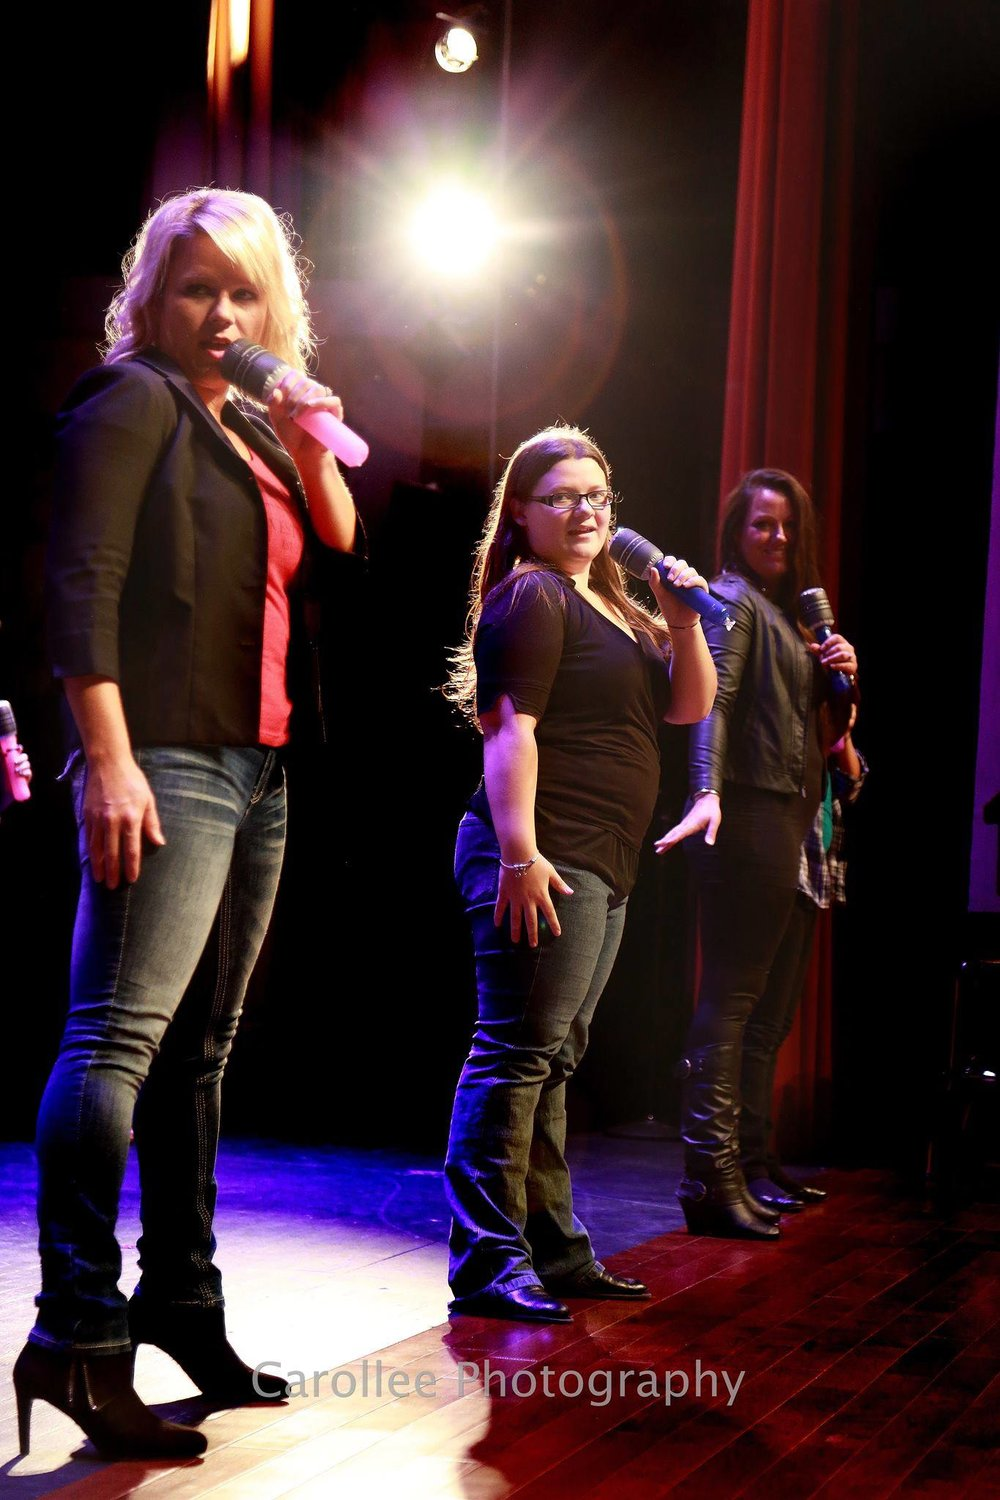 3 ladies lip syncing to Pitch perfect at the Bridges Lip Sync Battle